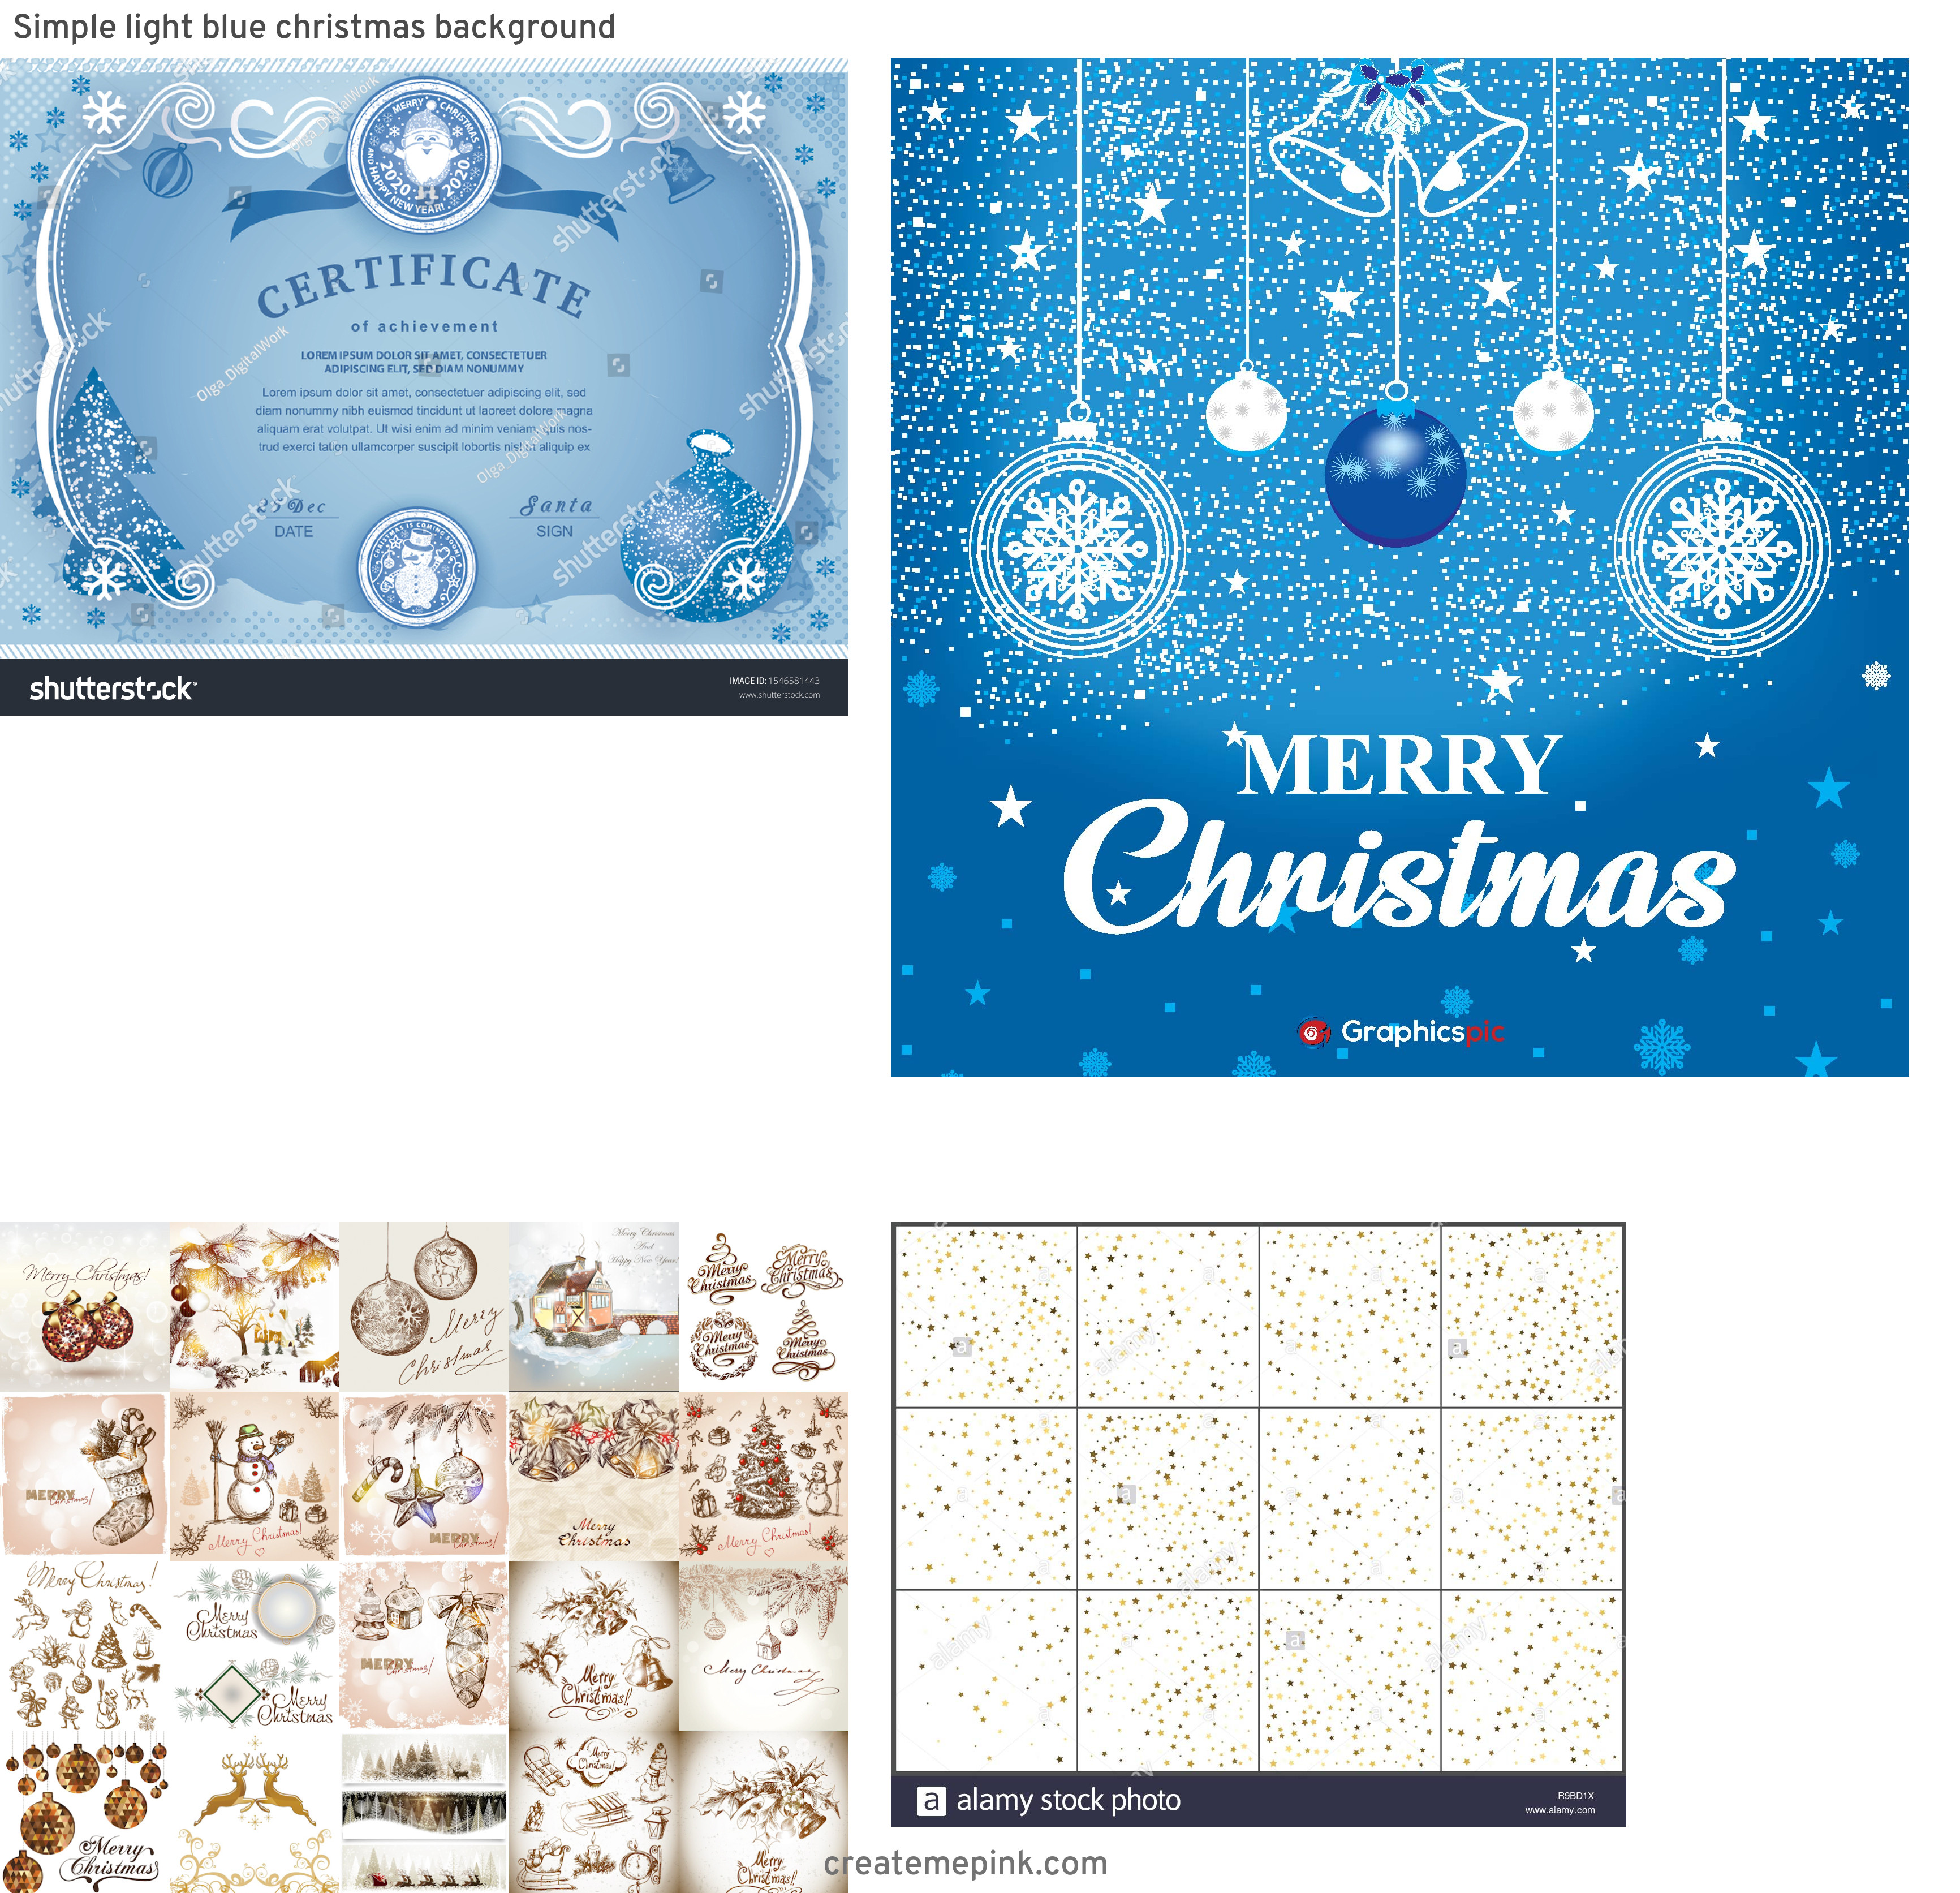 Professional Christmas Backgrounds Vector: Simple Light Blue Christmas Background